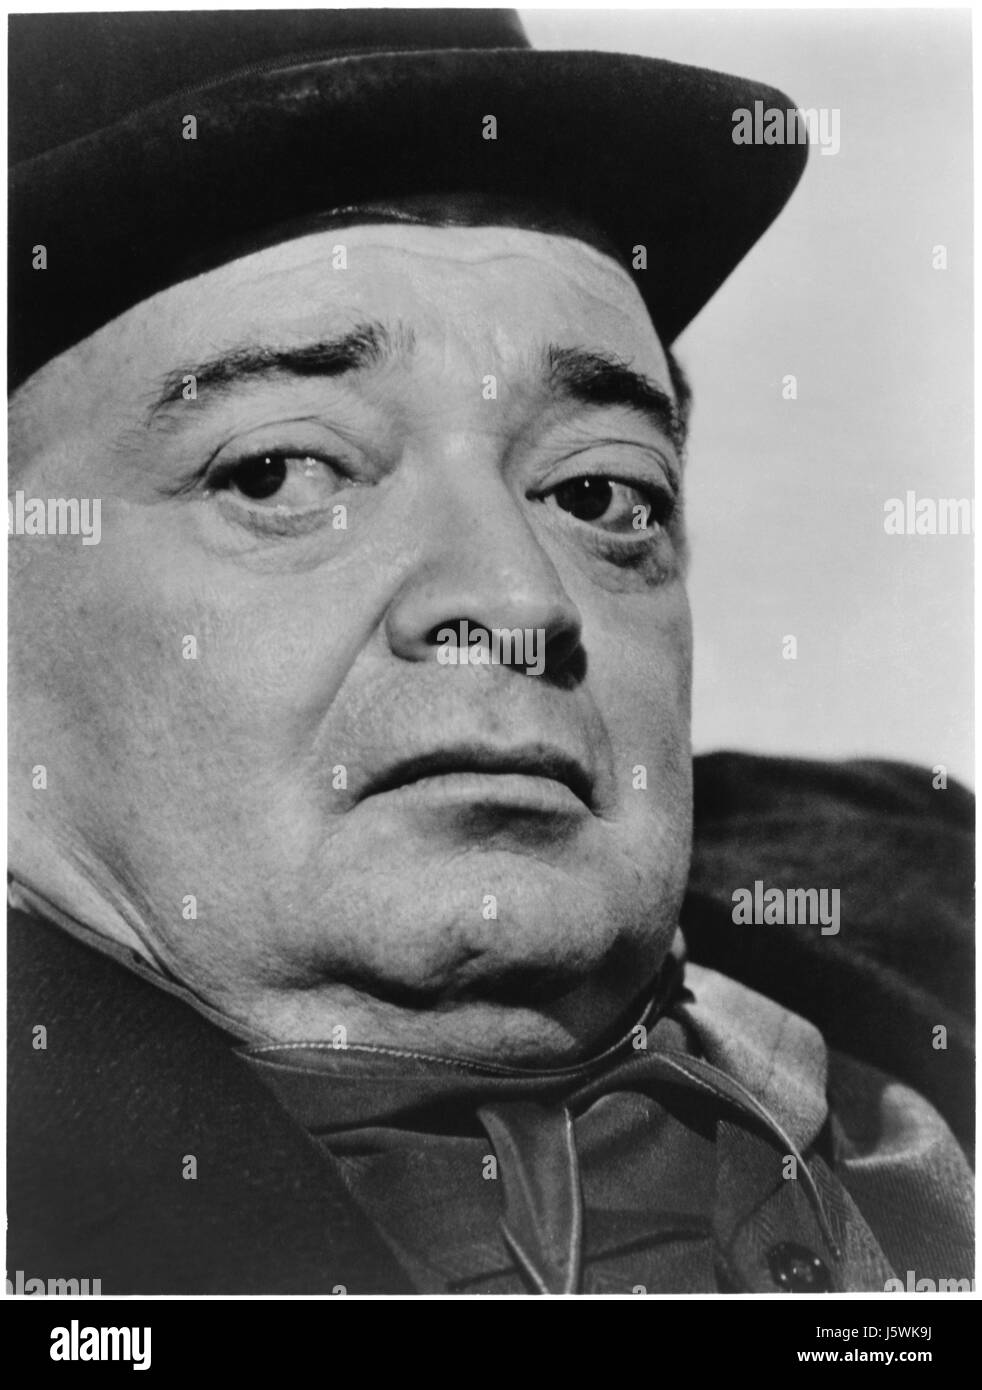 Peter Lorre, on-set of the Film, 'Tales of Terror', 1962 - Stock Image